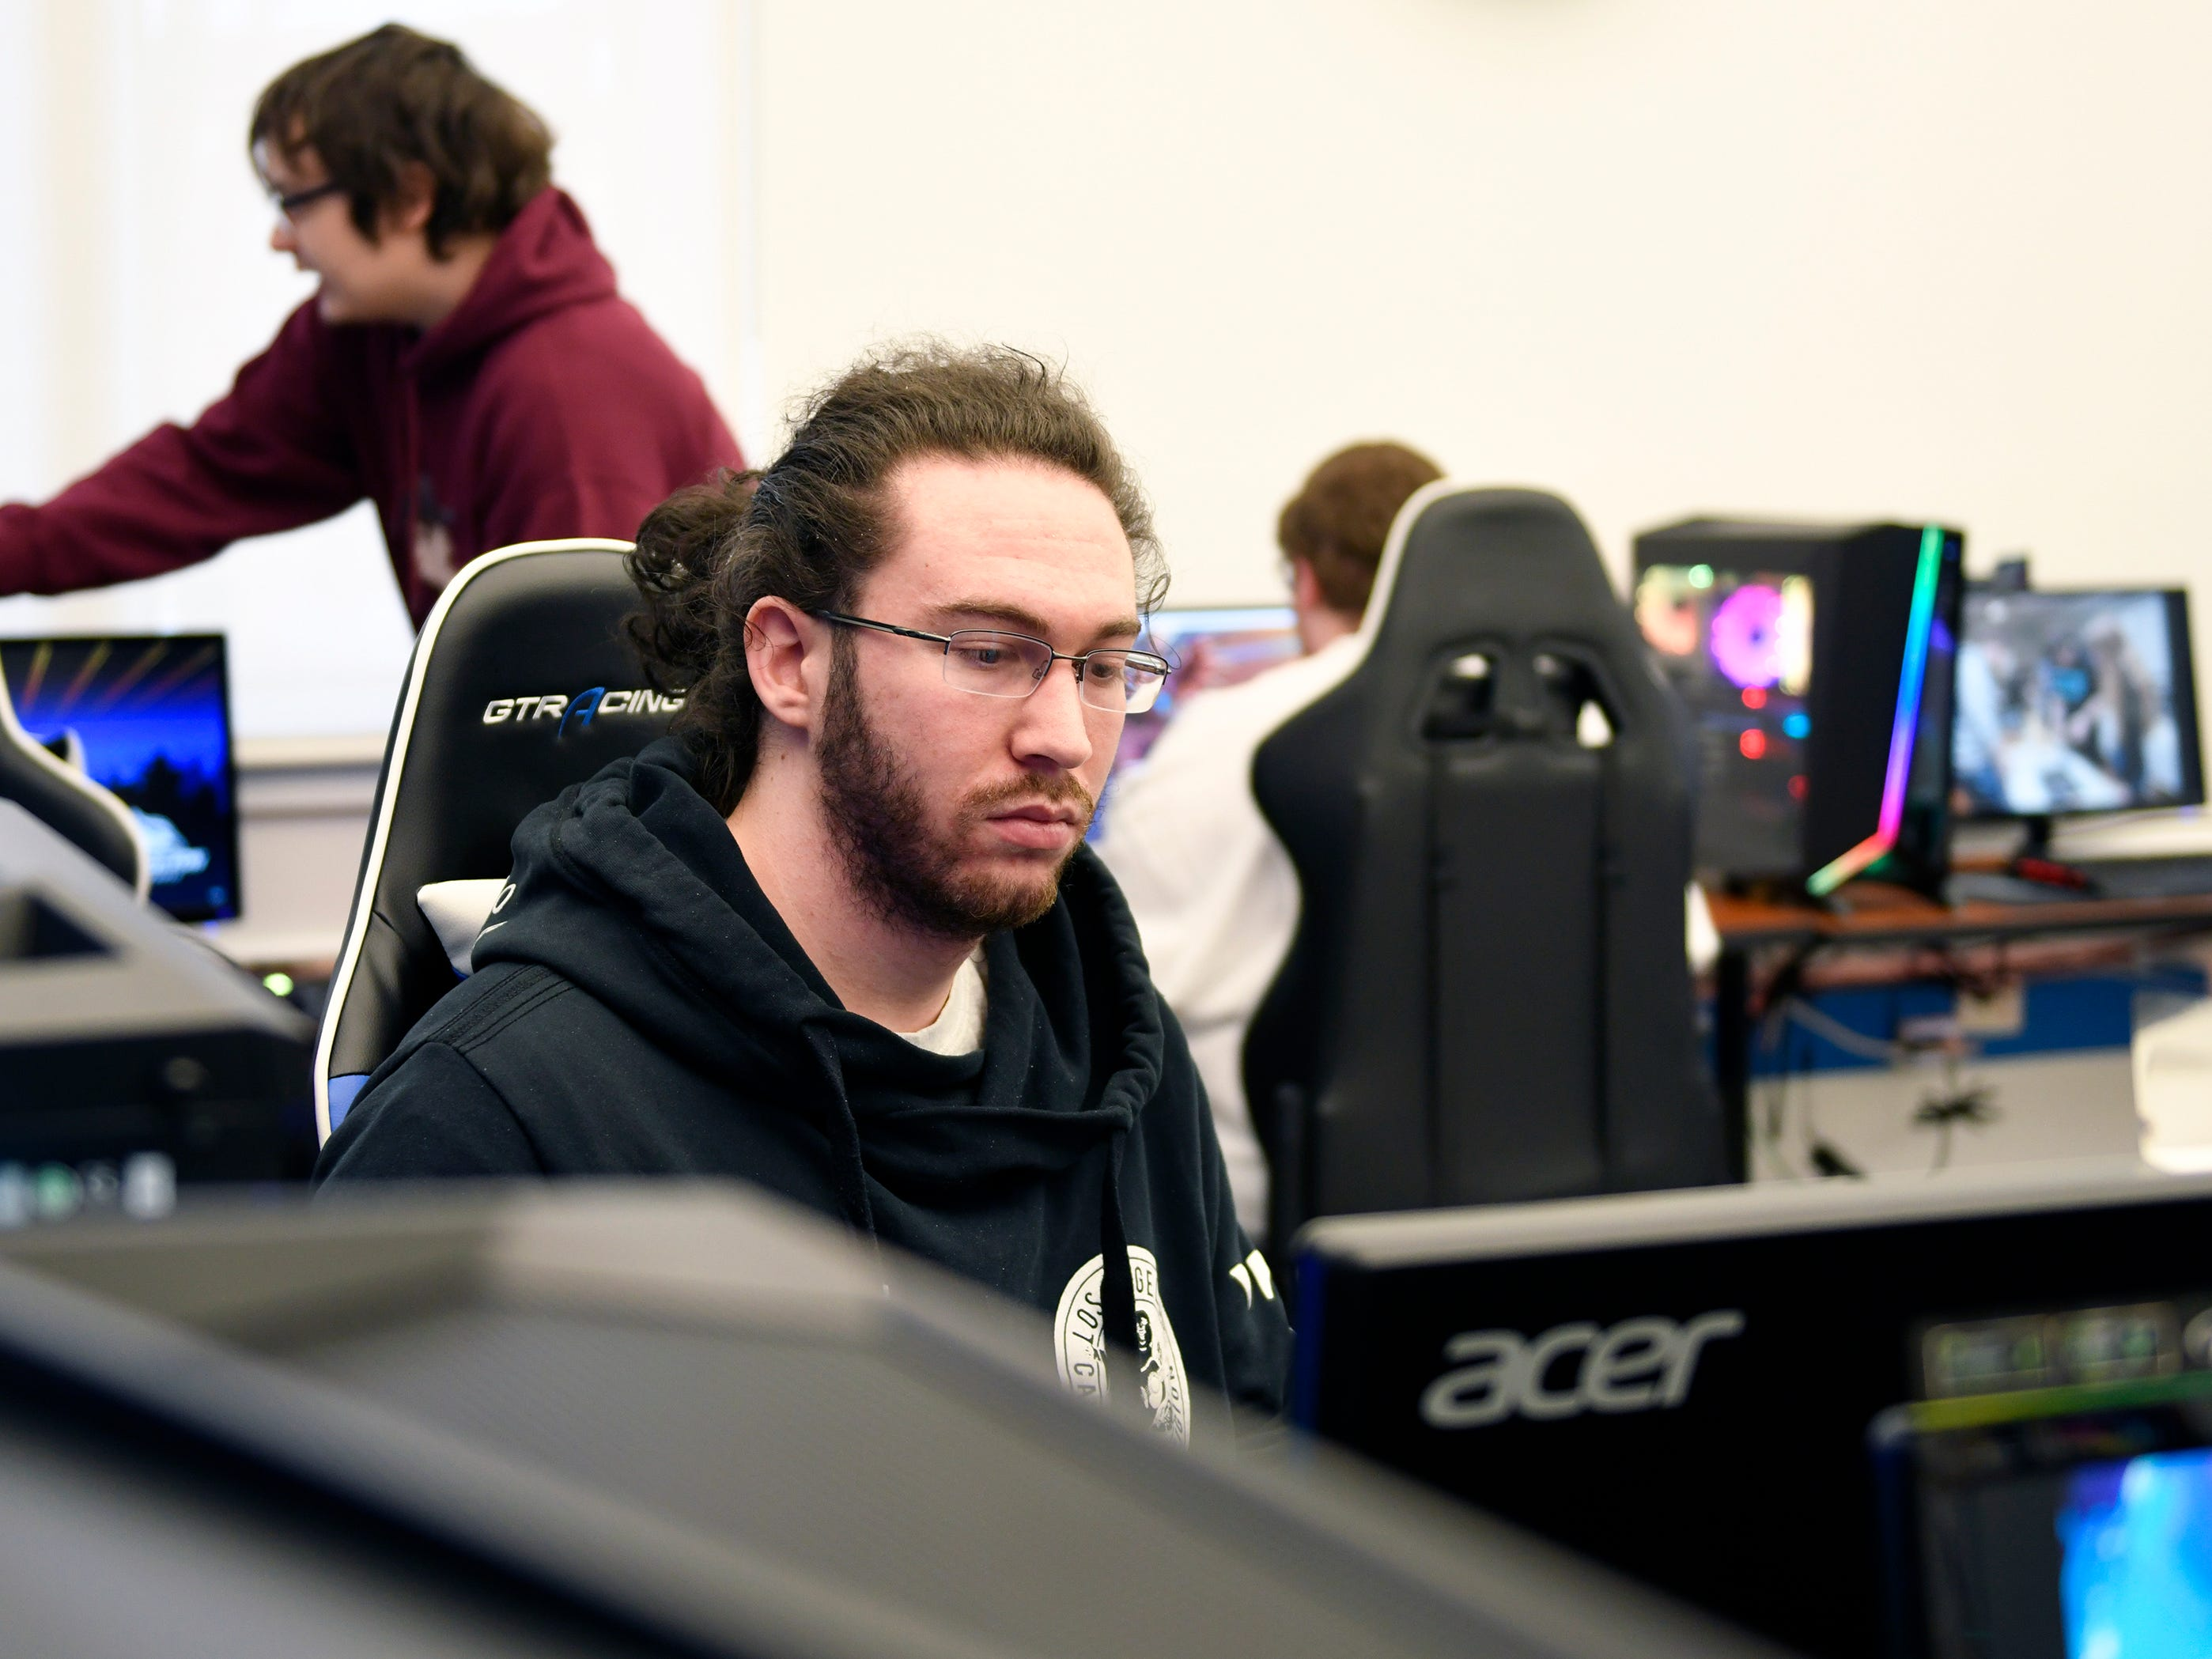 Jacob Hoppenfeld, a Stockton University student from Voorhees, N.J., is on the school's new Esports team. More than 50 students are currently competing.